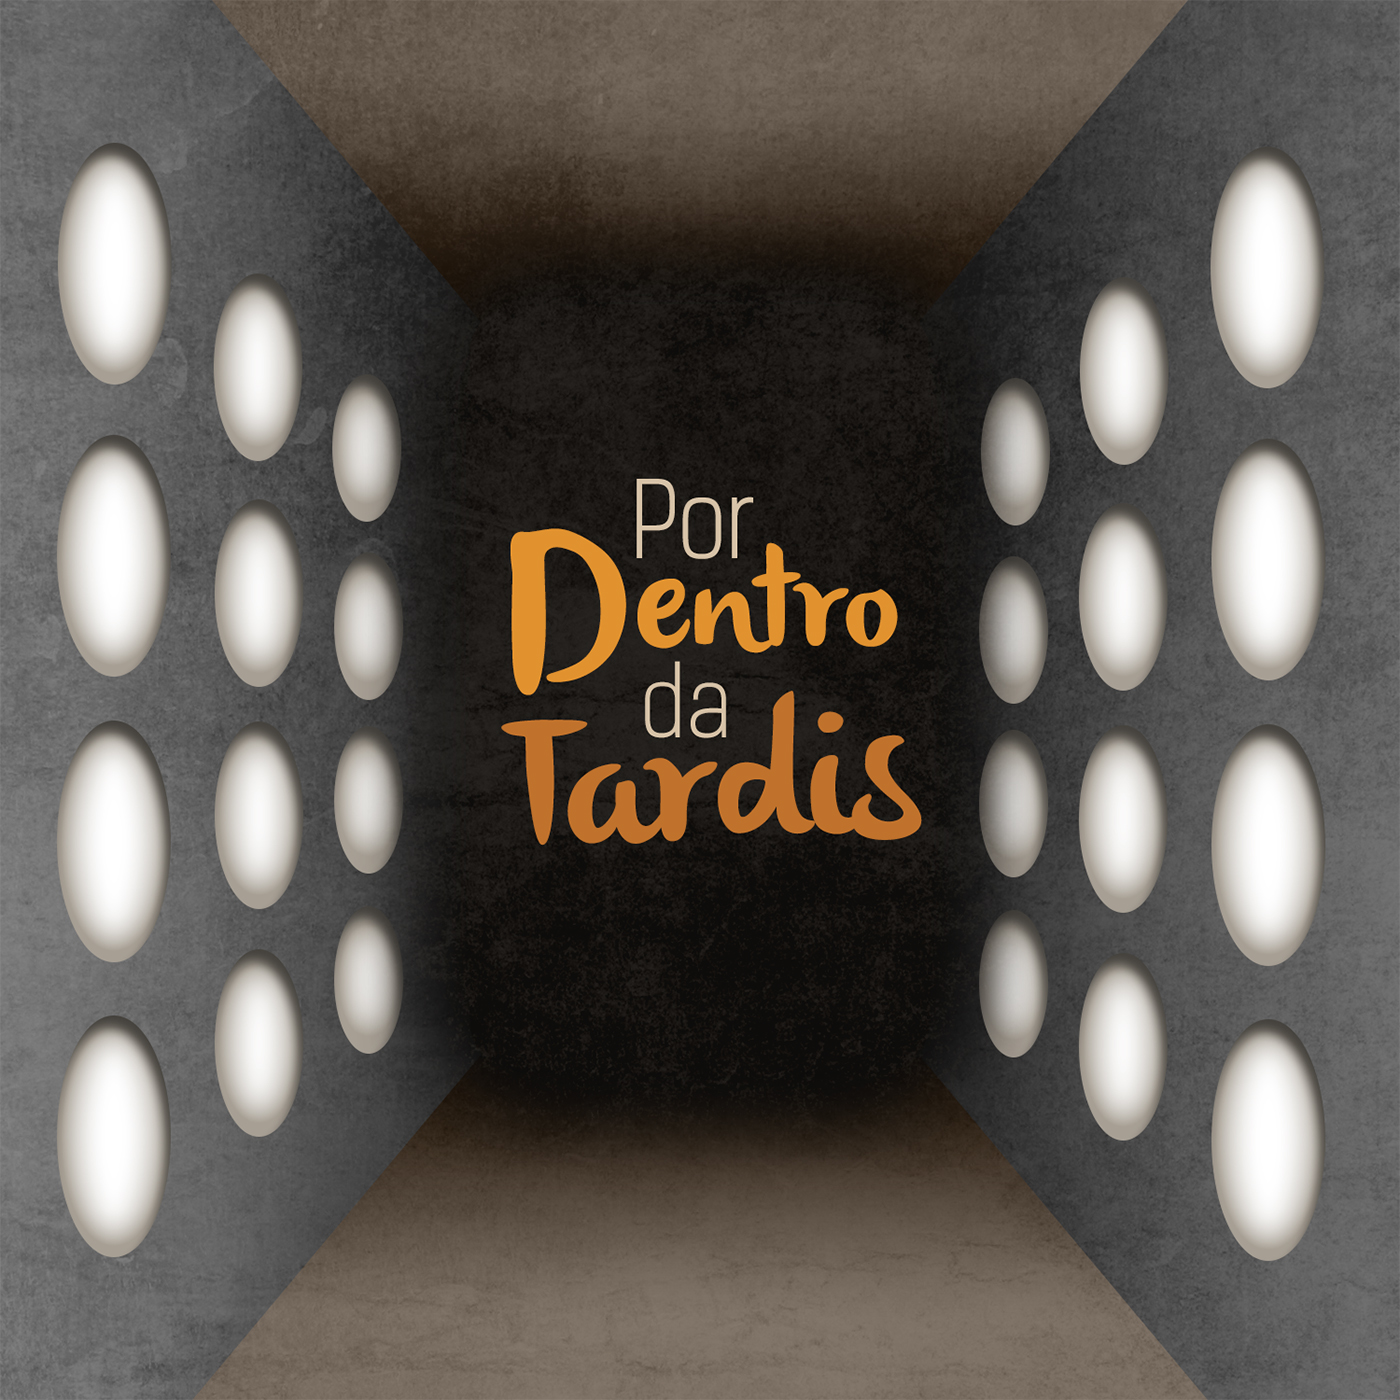 Por Dentro da TARDIS - áudio-drama original de Doctor Who